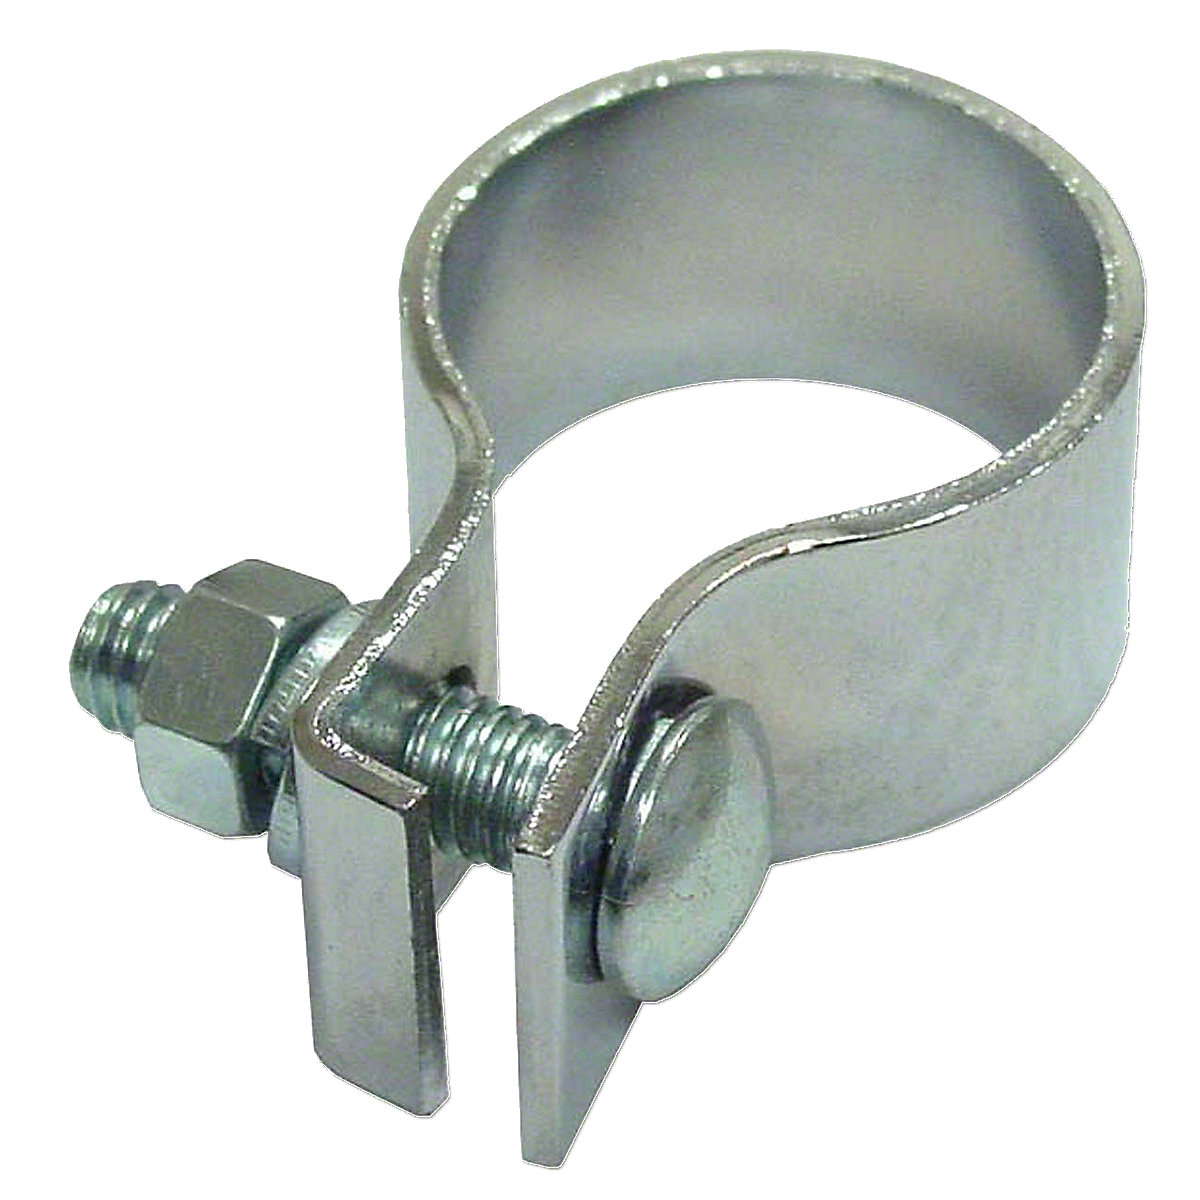 "ABC341 1-1/2"" Muffler Clamp"